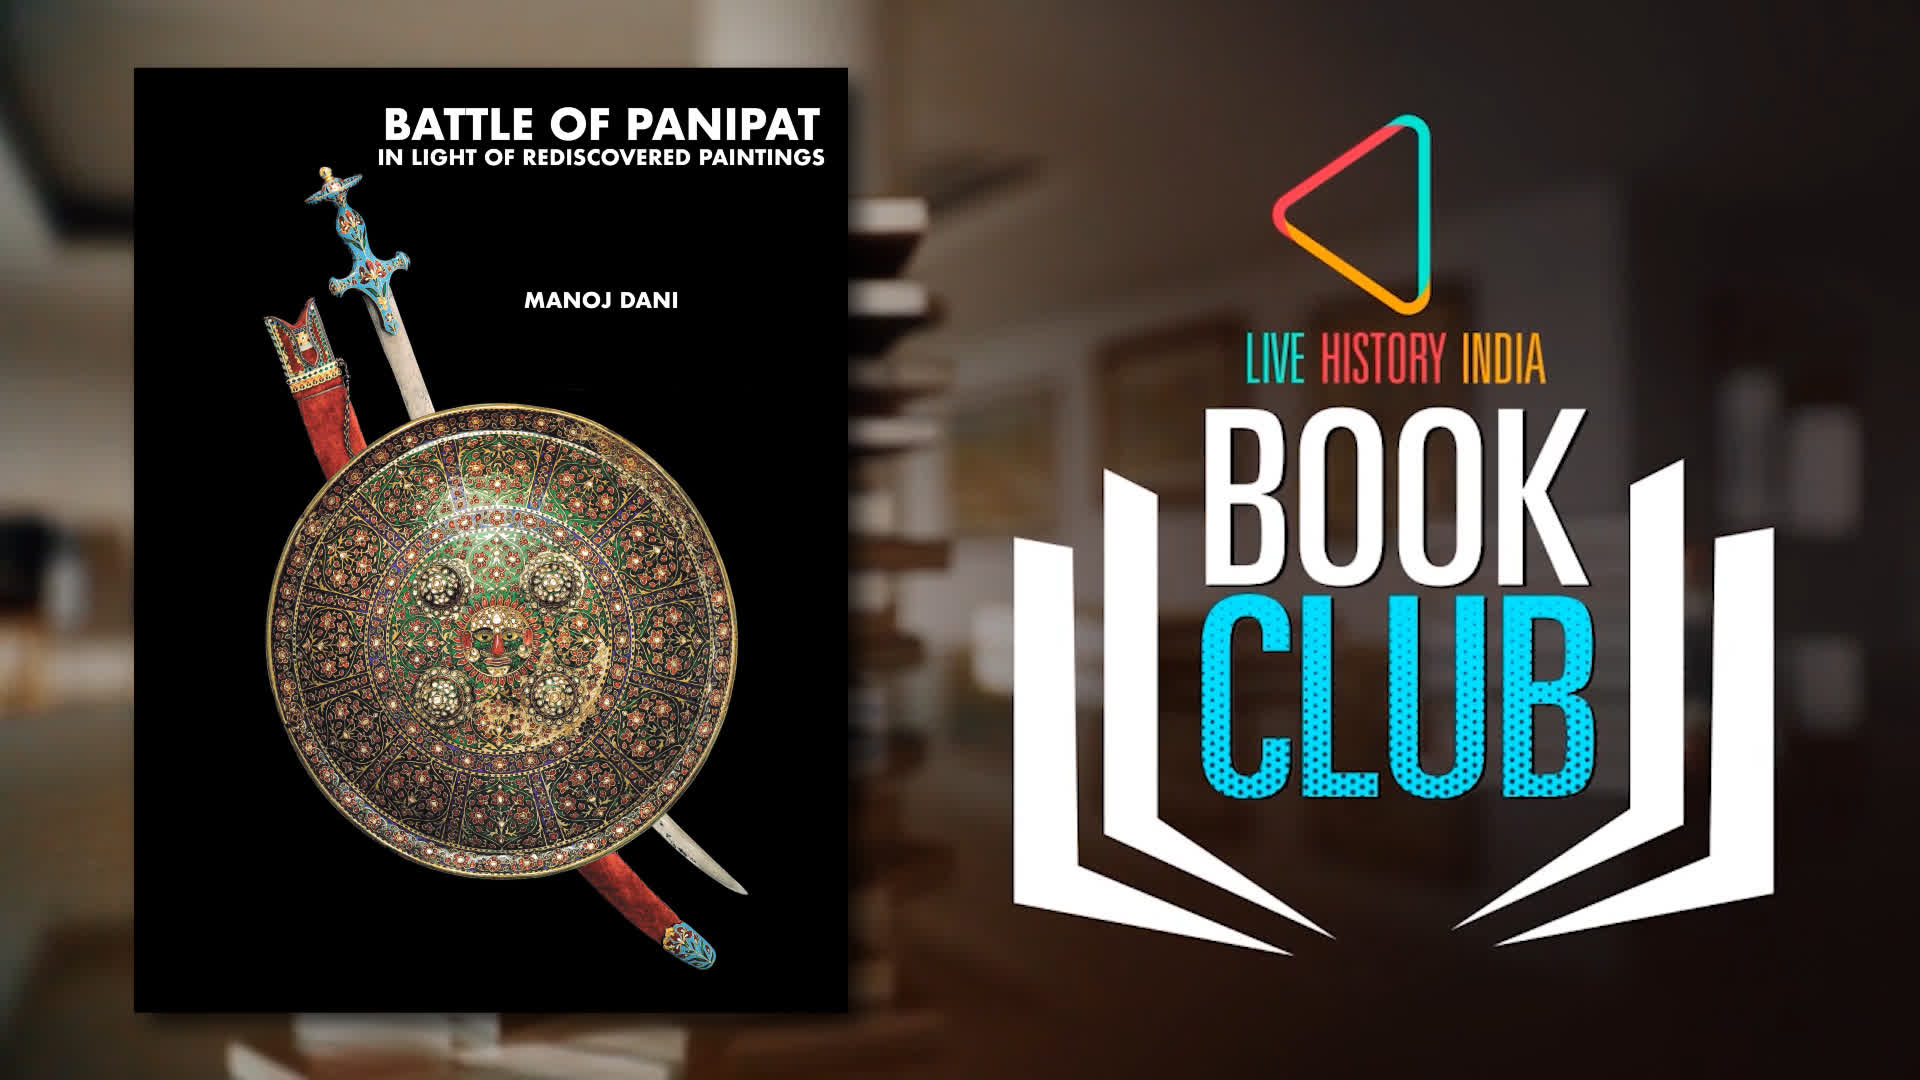 Manoj Dani on Battle of Panipat in Light of Rediscovered Paintings